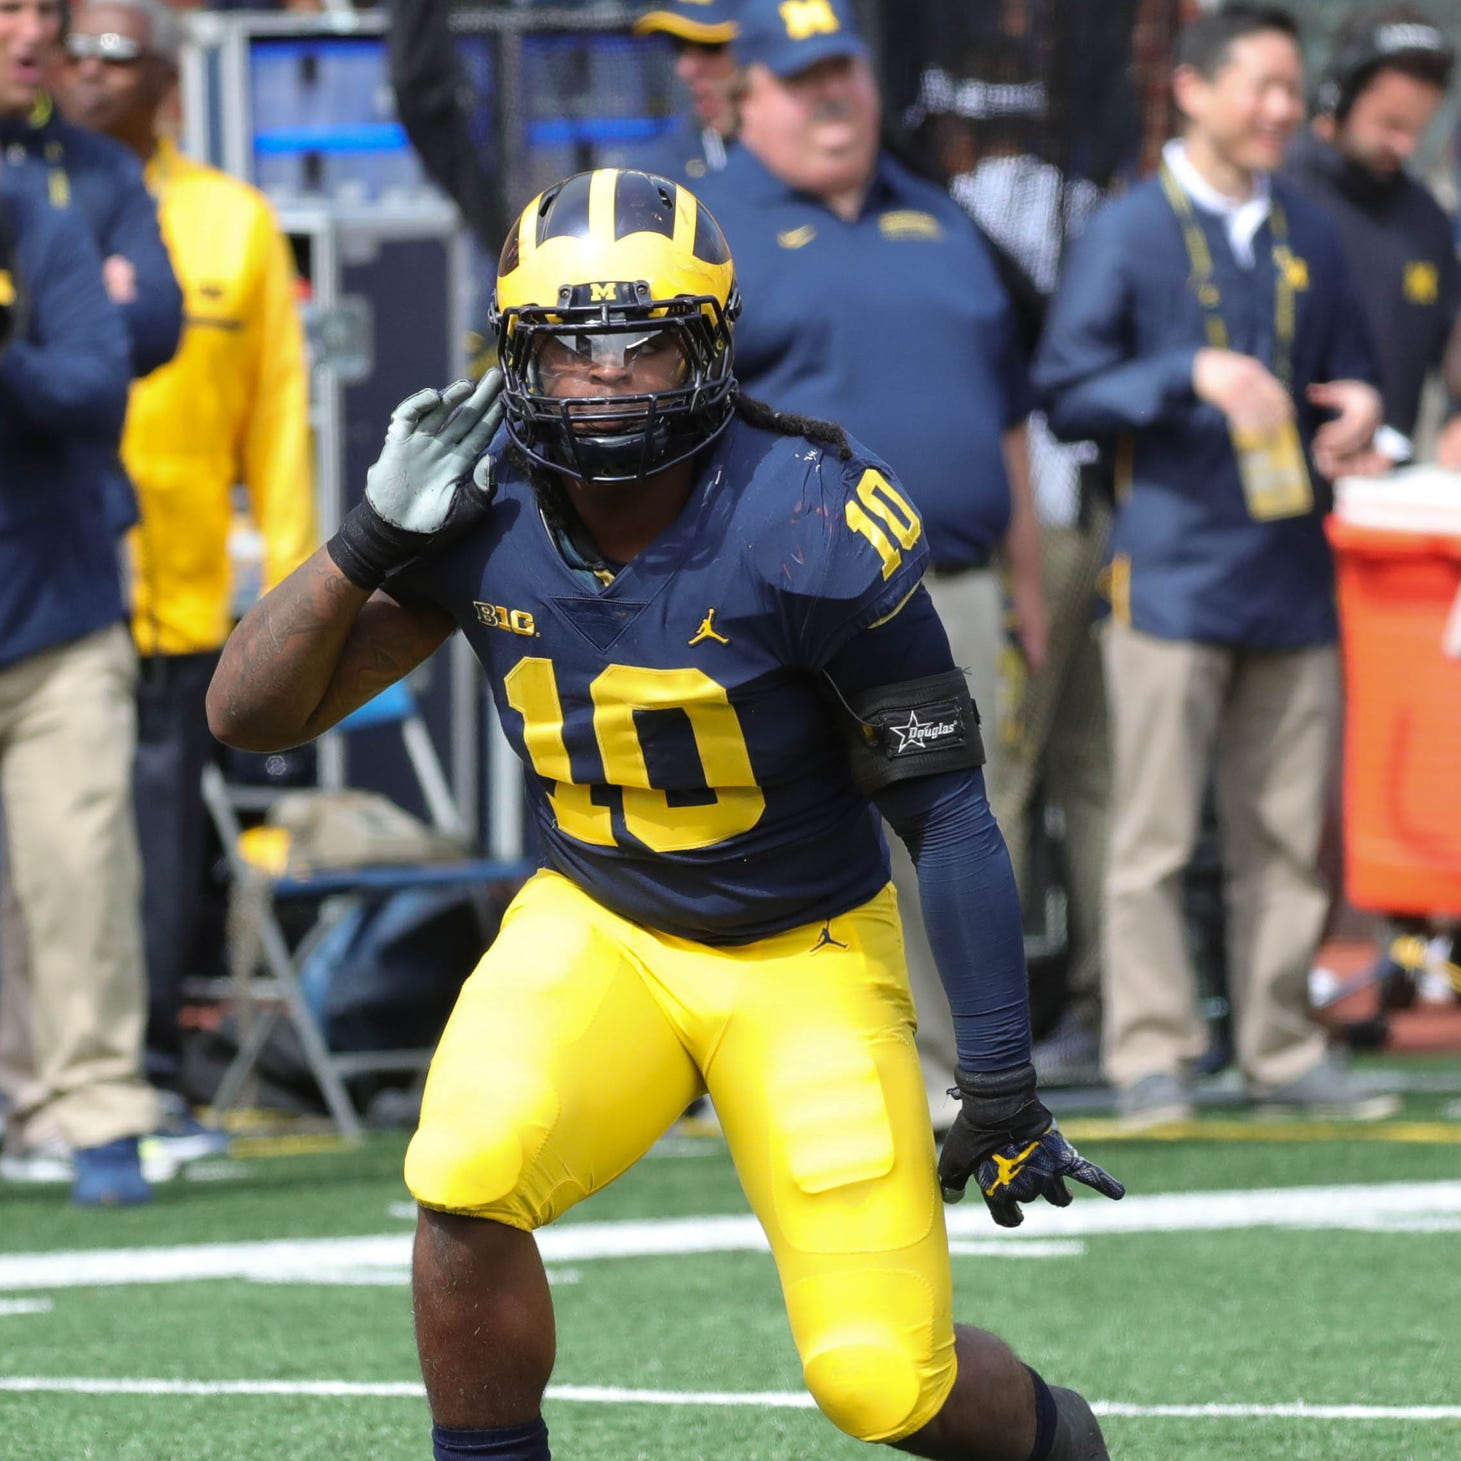 Michigan's Devin Bush Jr. soars up Mel Kiper's NFL draft board